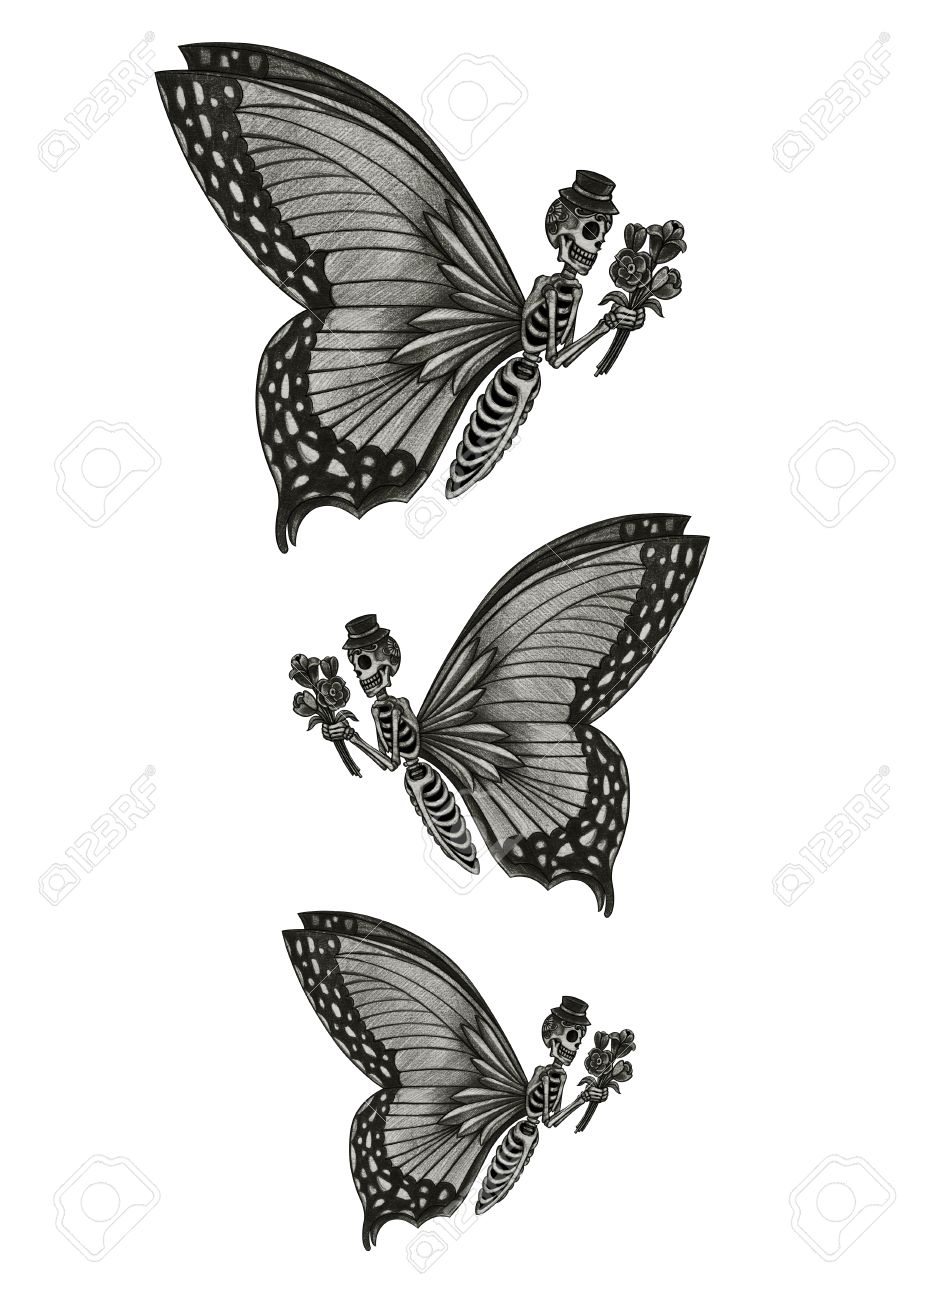 Skull butterfly day of the dead hand pencil drawing on paper stock photo 40393846